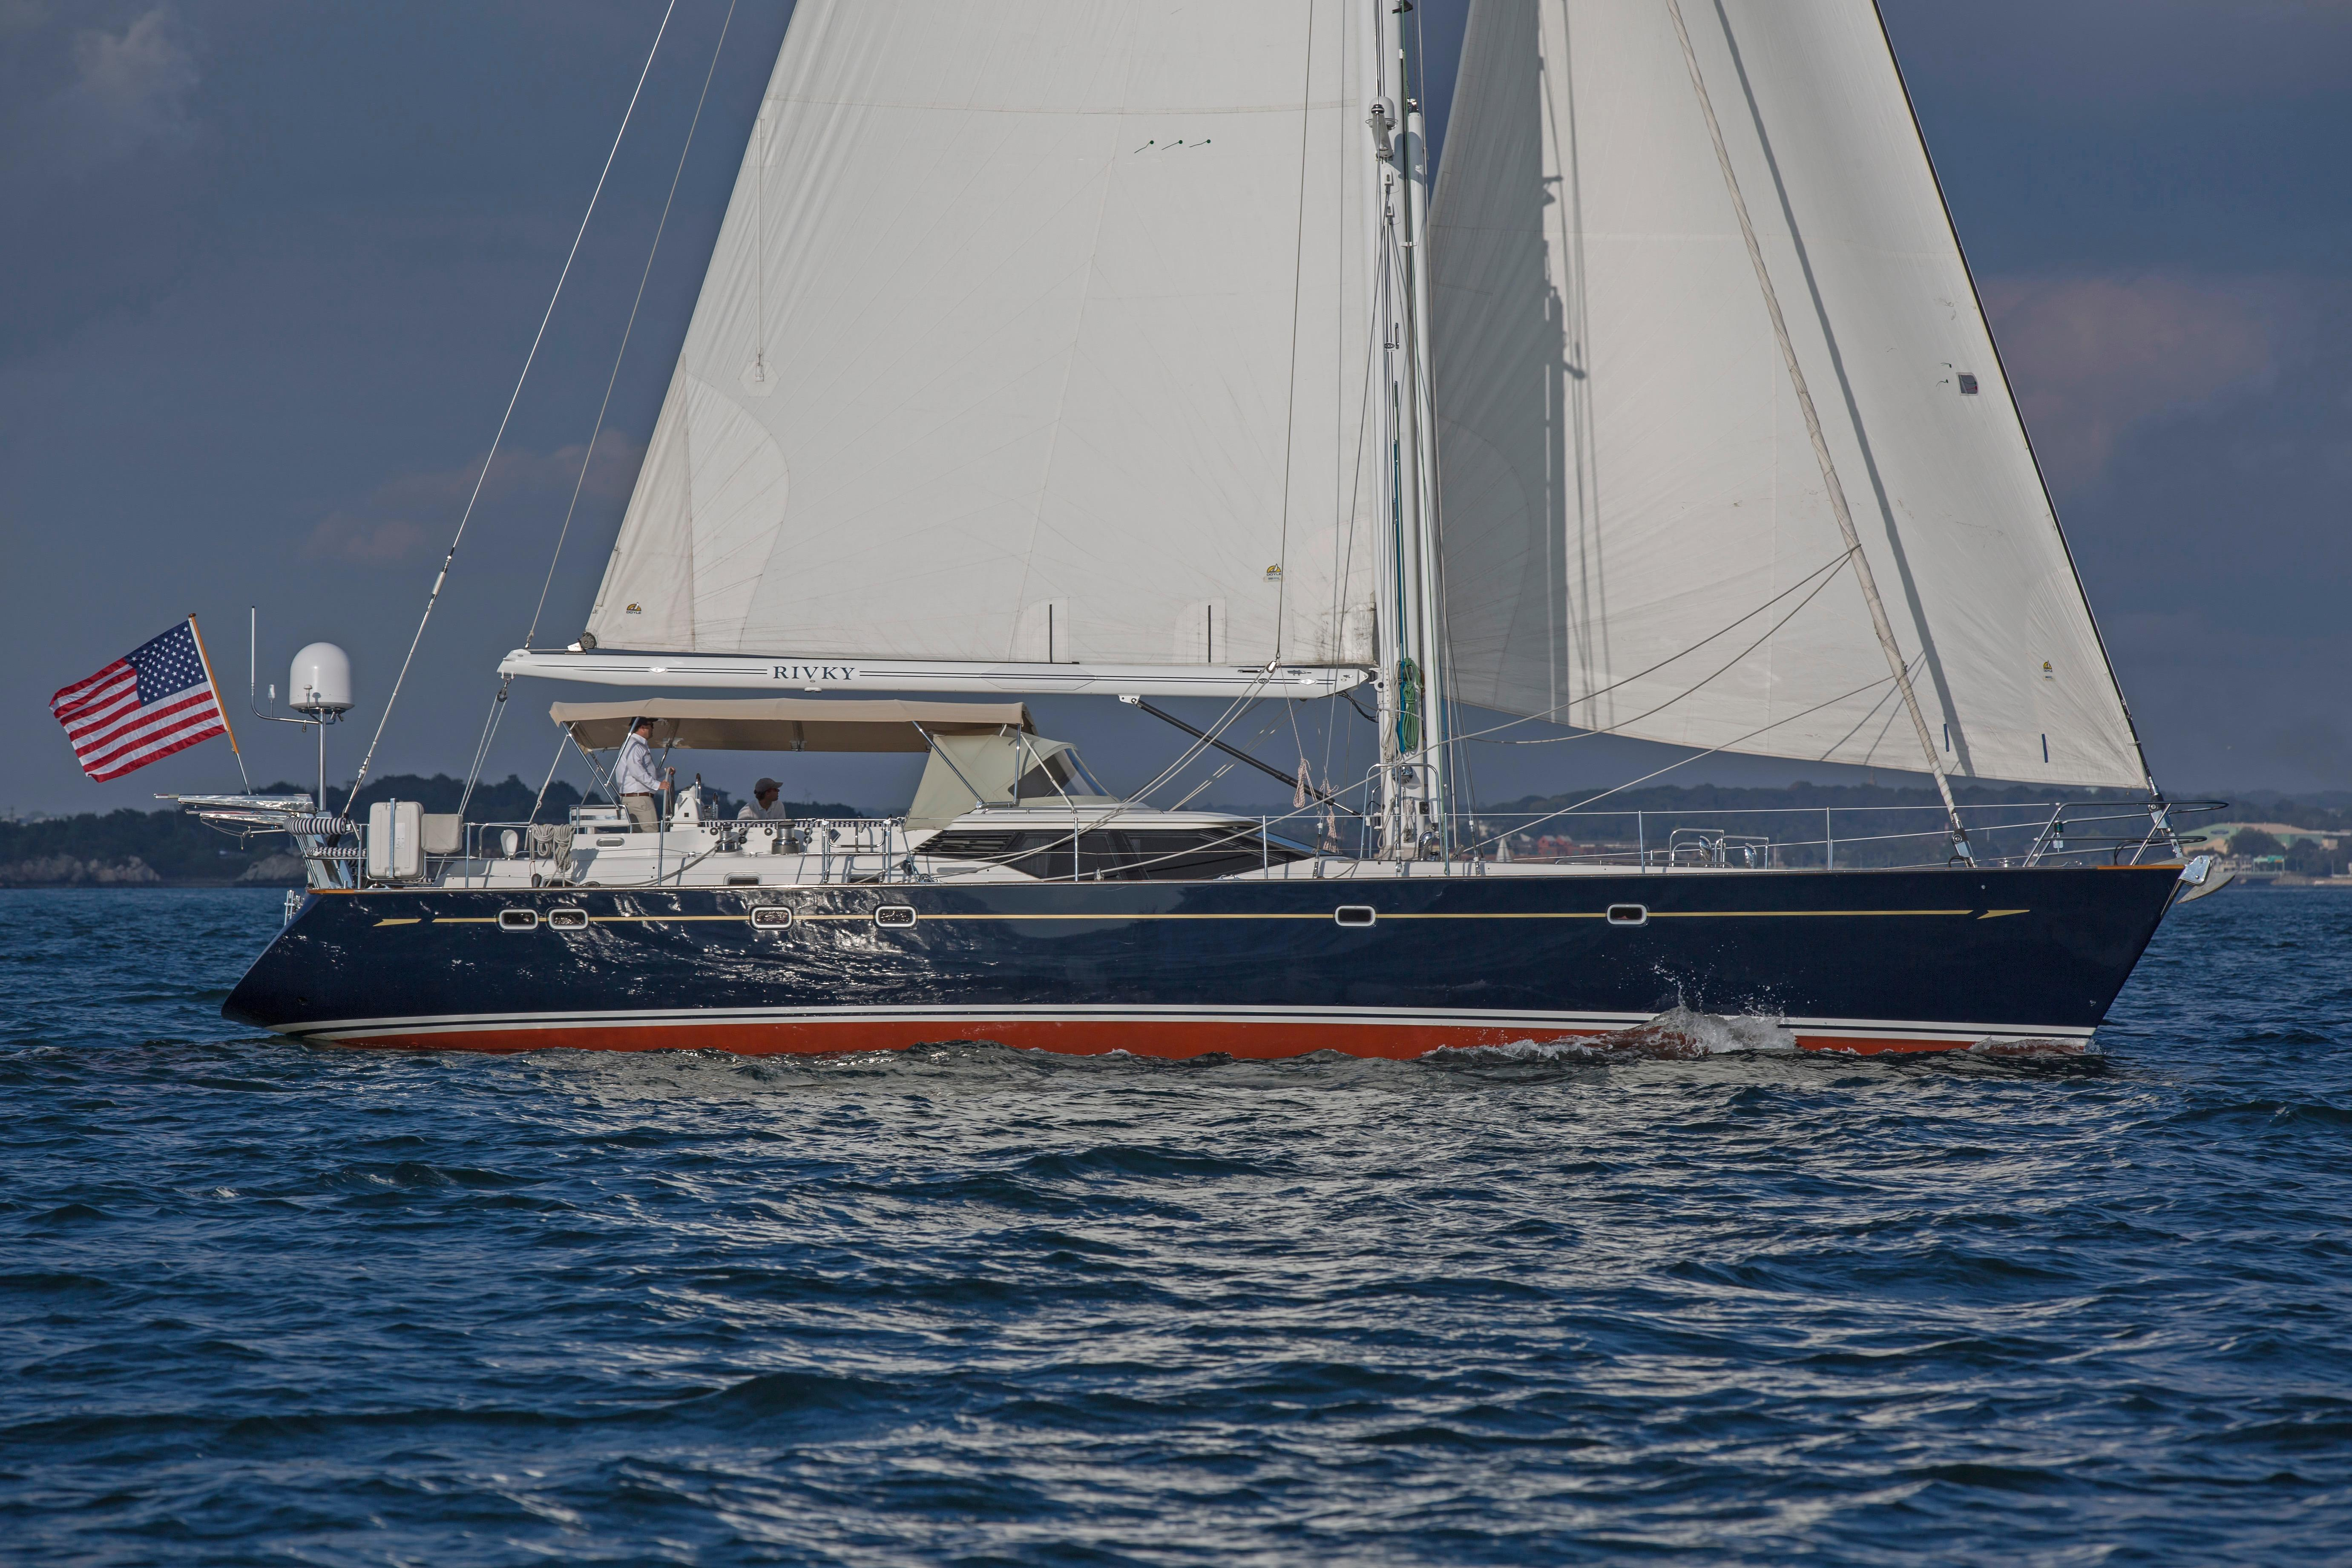 Used Oyster Yachts for Sale - MLS Boat Search - Sailboats